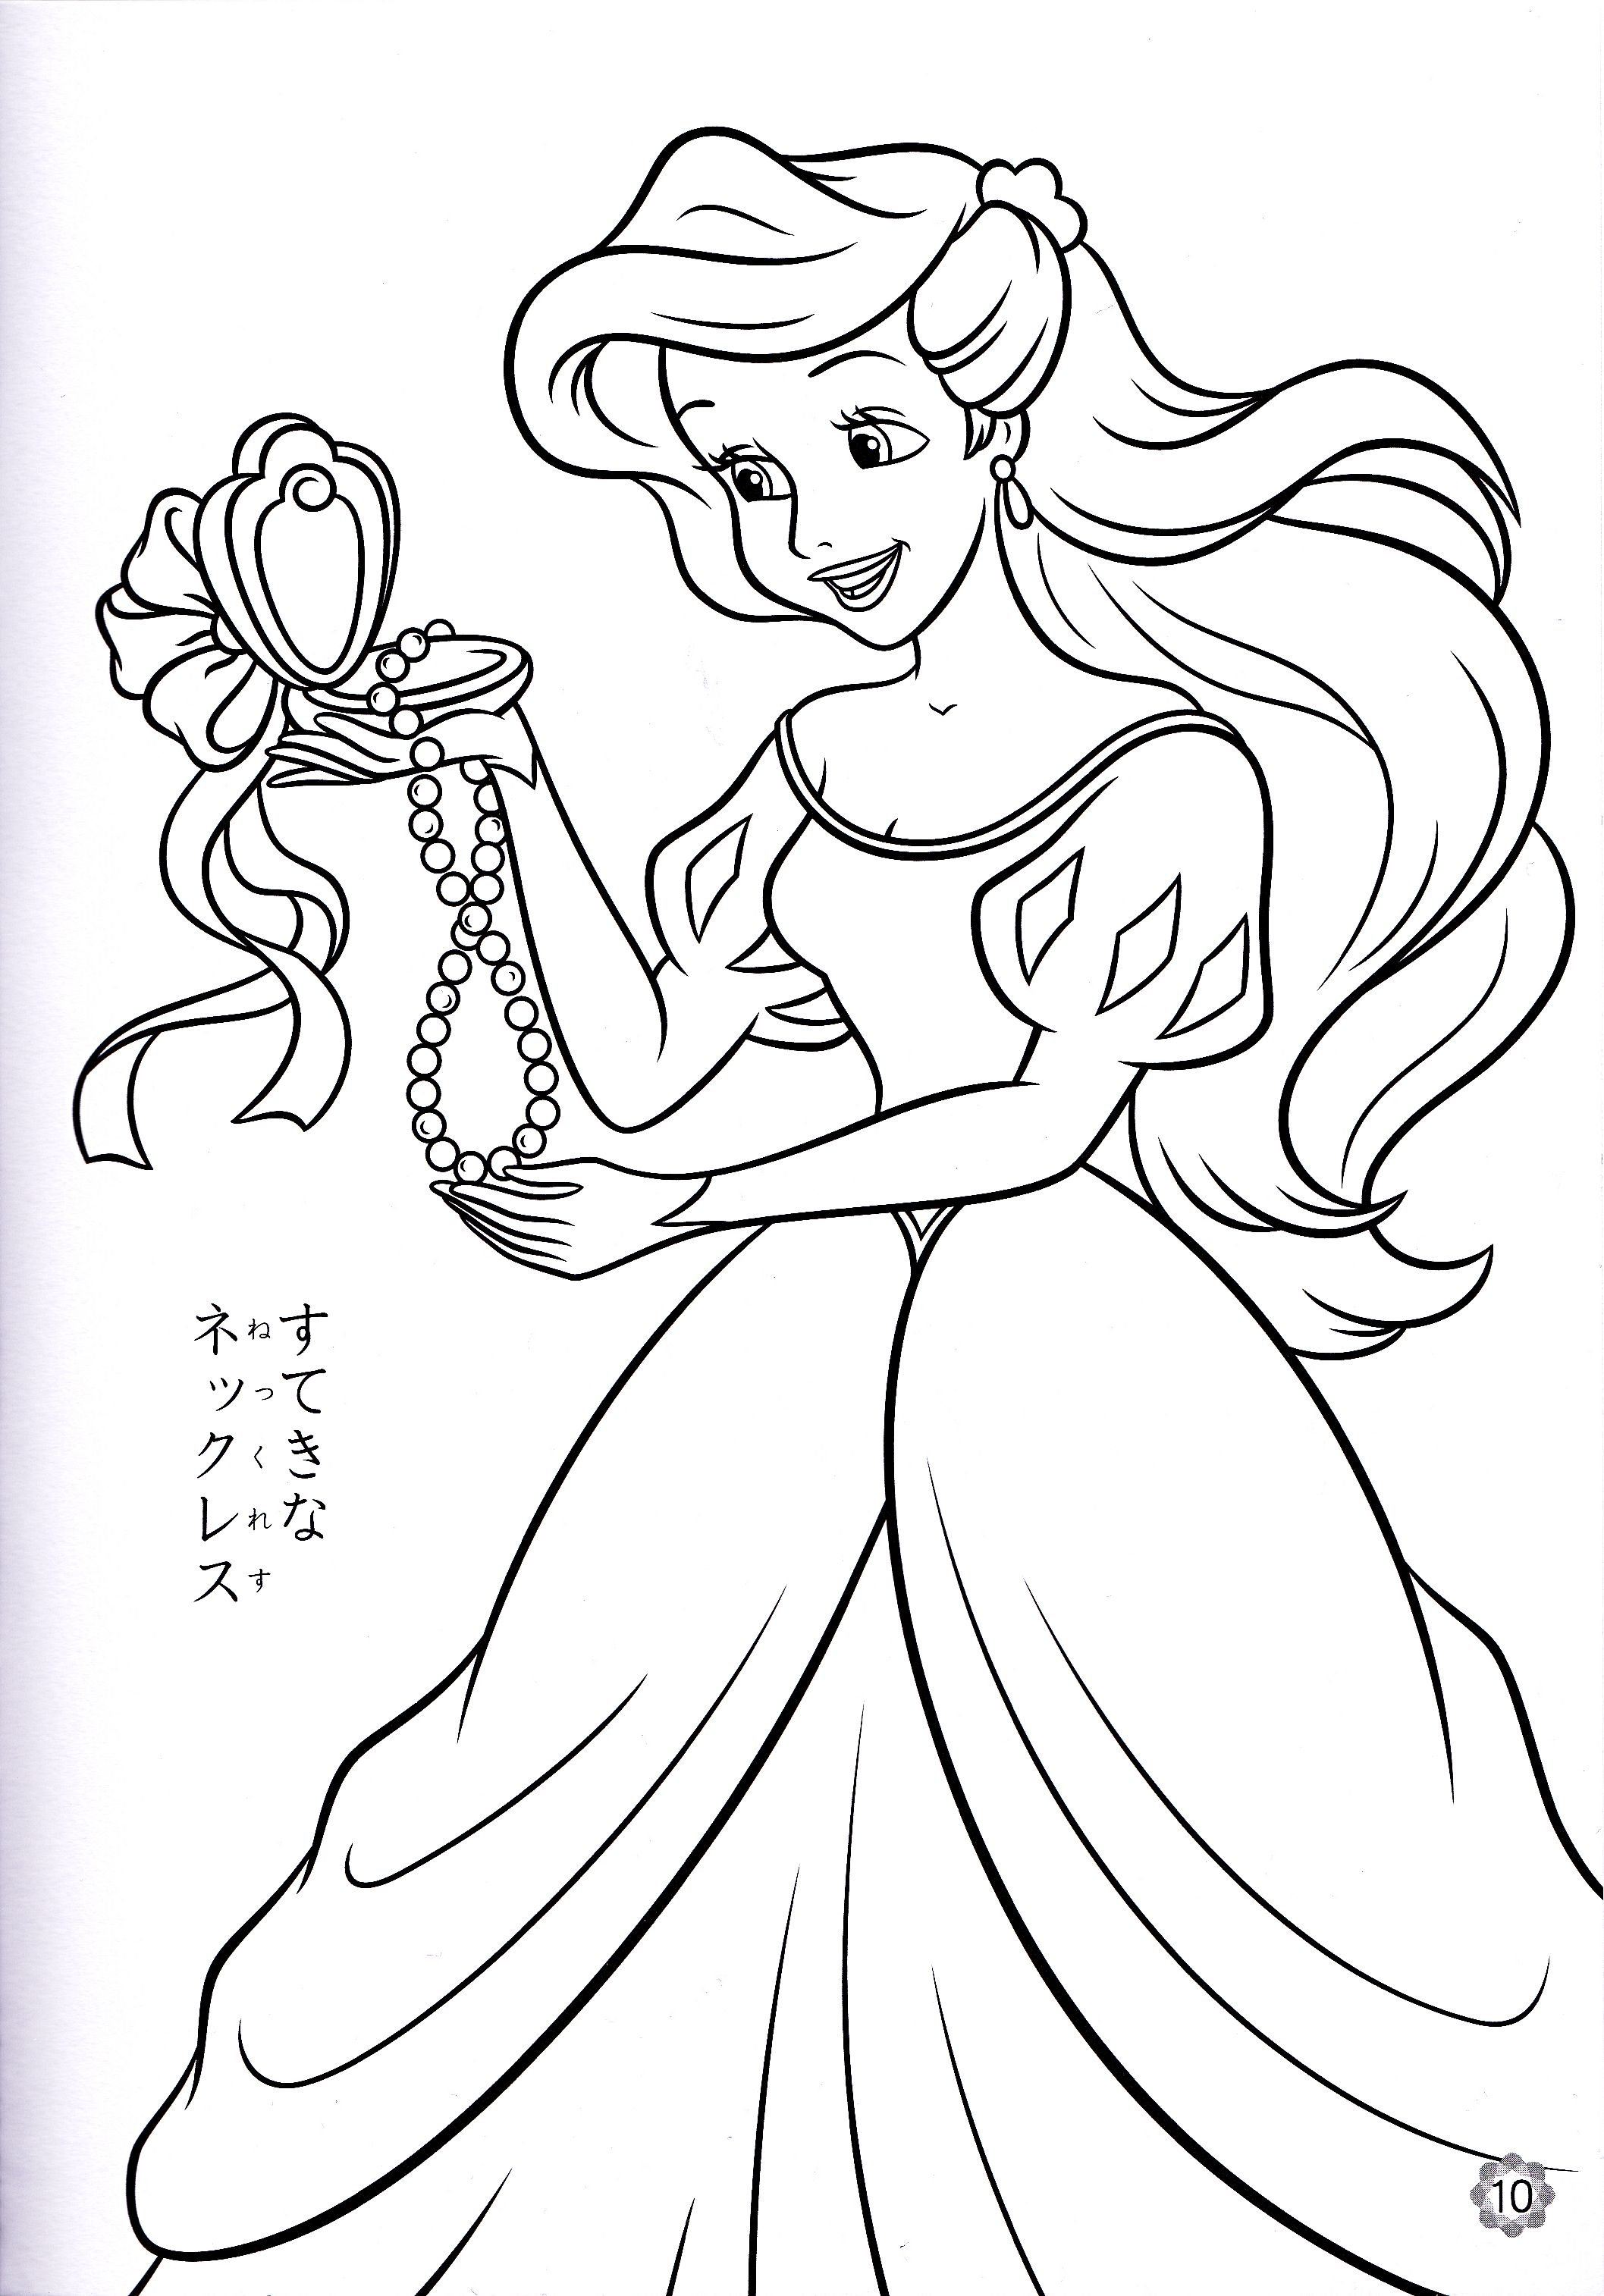 Kids coloring book pages free - Disney Coloring Pages Ariel Free Online Printable Coloring Pages Sheets For Kids Get The Latest Free Disney Coloring Pages Ariel Images Favorite Coloring